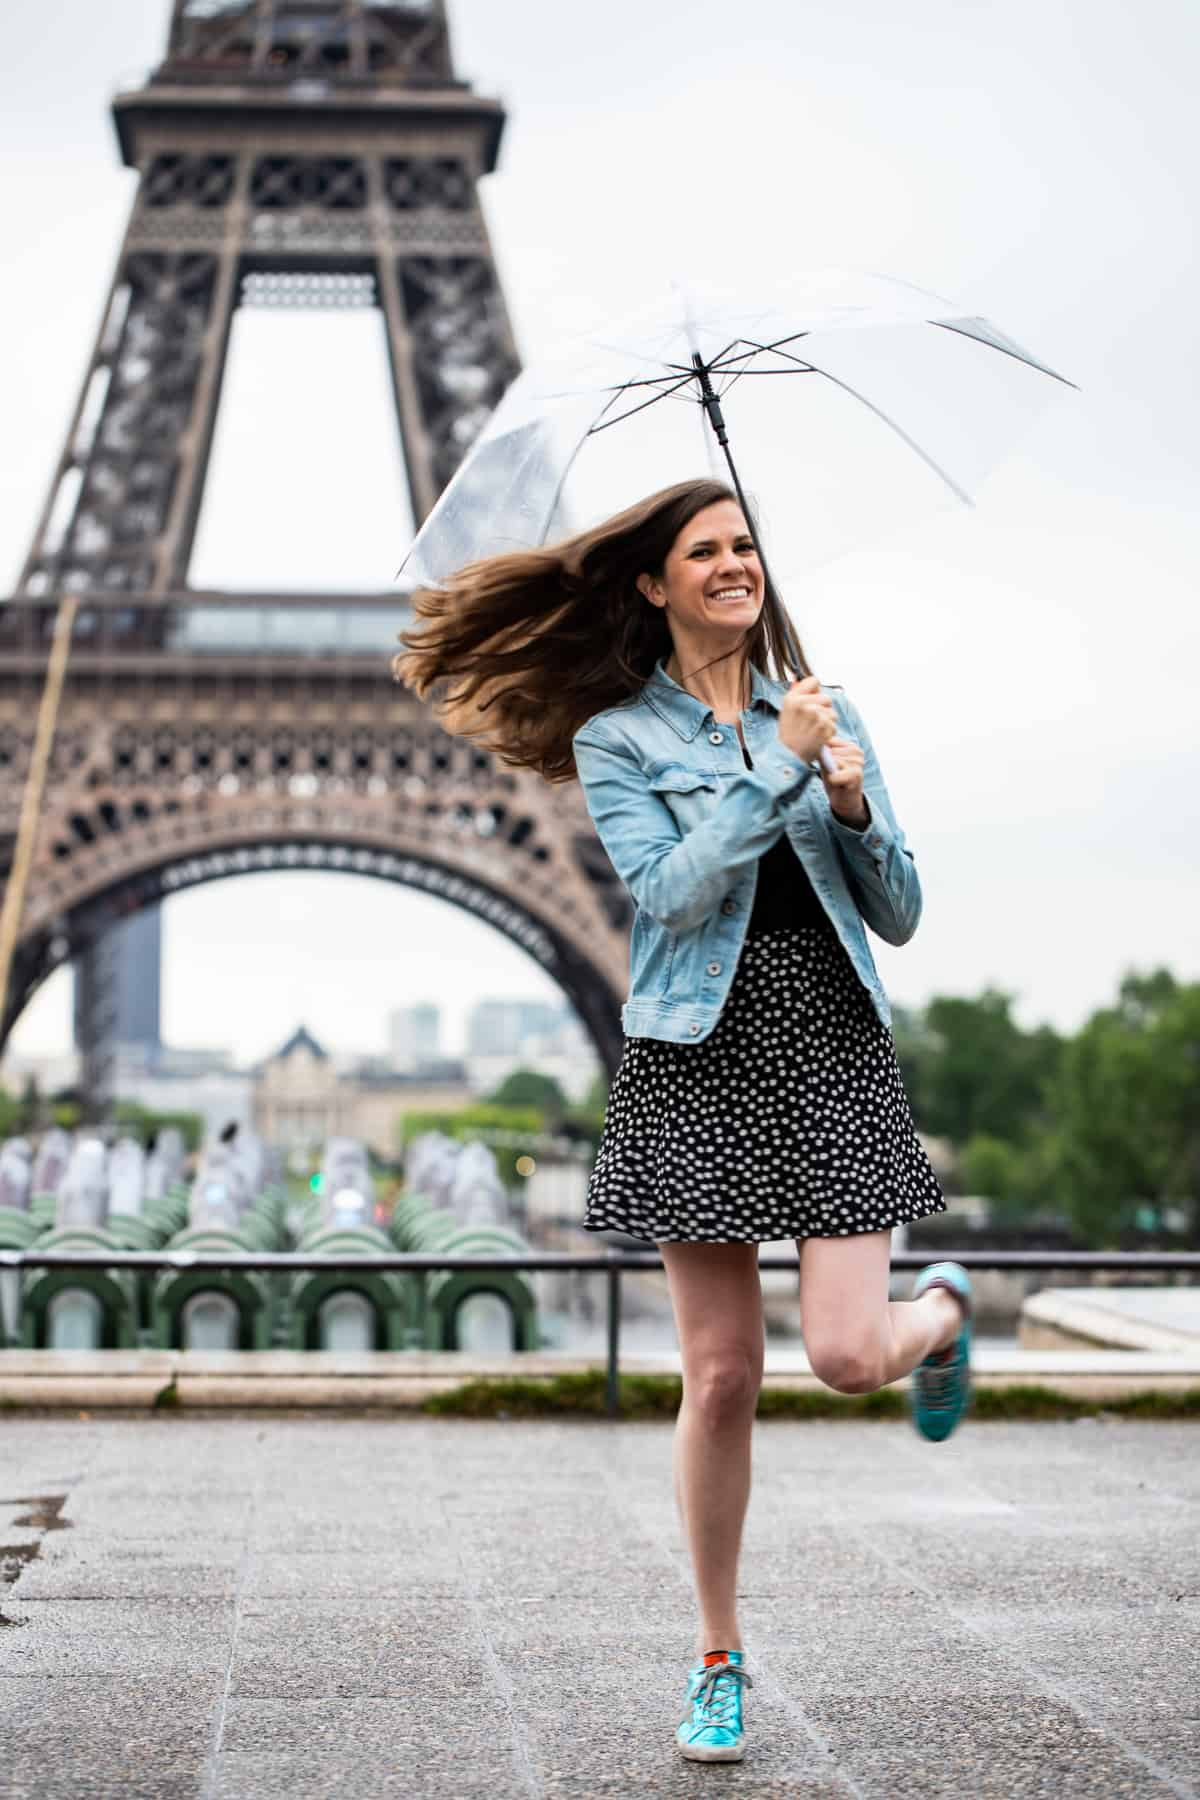 Meme (a brunette female) is holding umbrella and spinning around in front of the Eiffel Tower wearing a denim jacket, skirt, and blue shoes